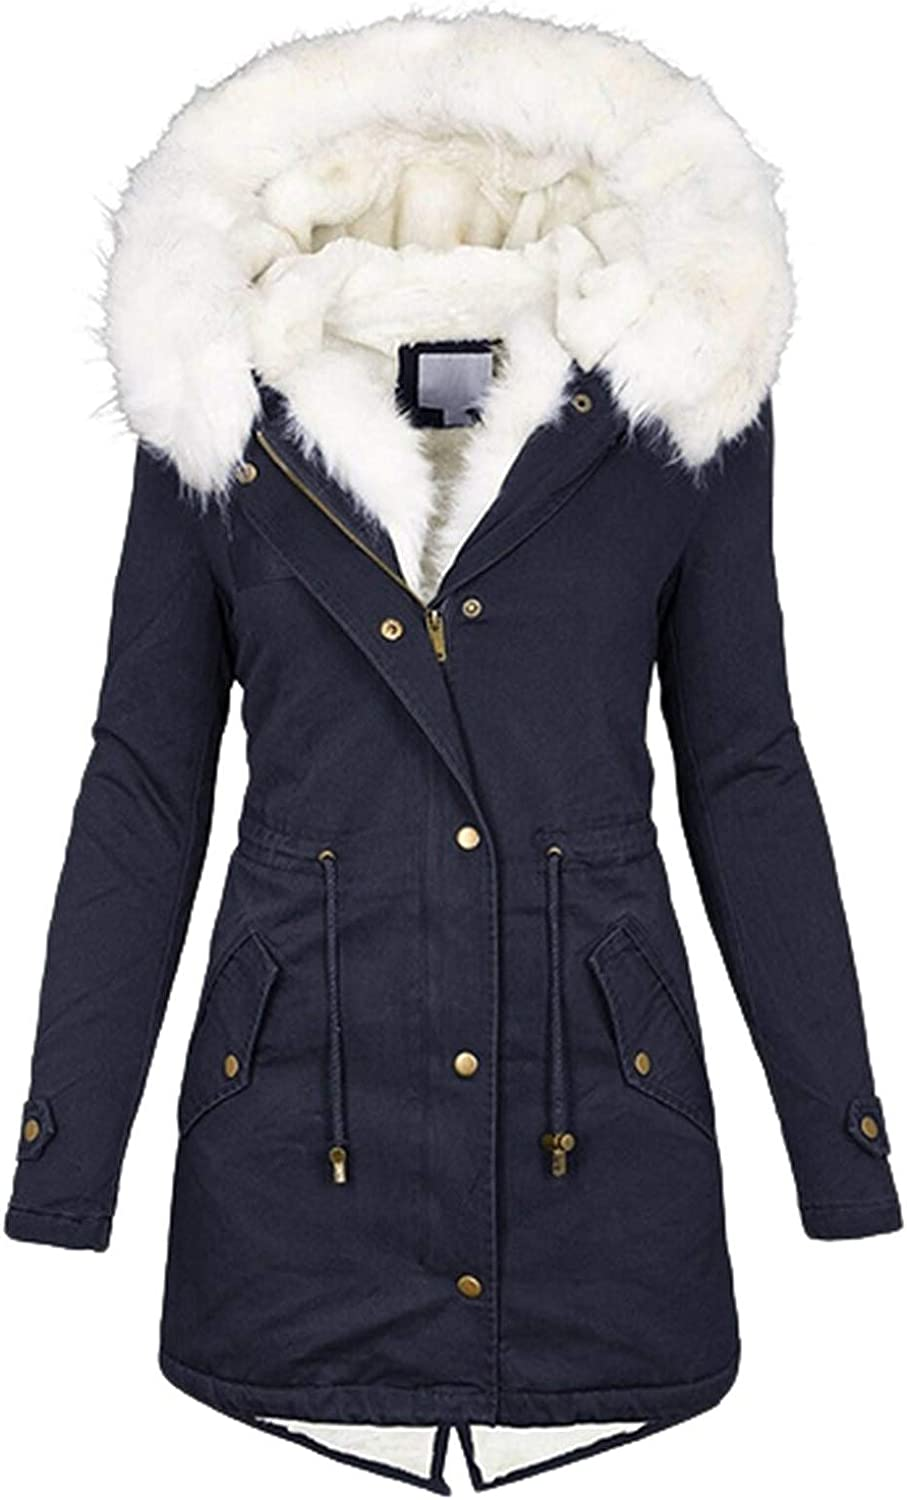 BOXIACEY Winter Coats for Women Warm Hooded Pocket Hoodies Thick Padded Outerwear Big Collar Jackets